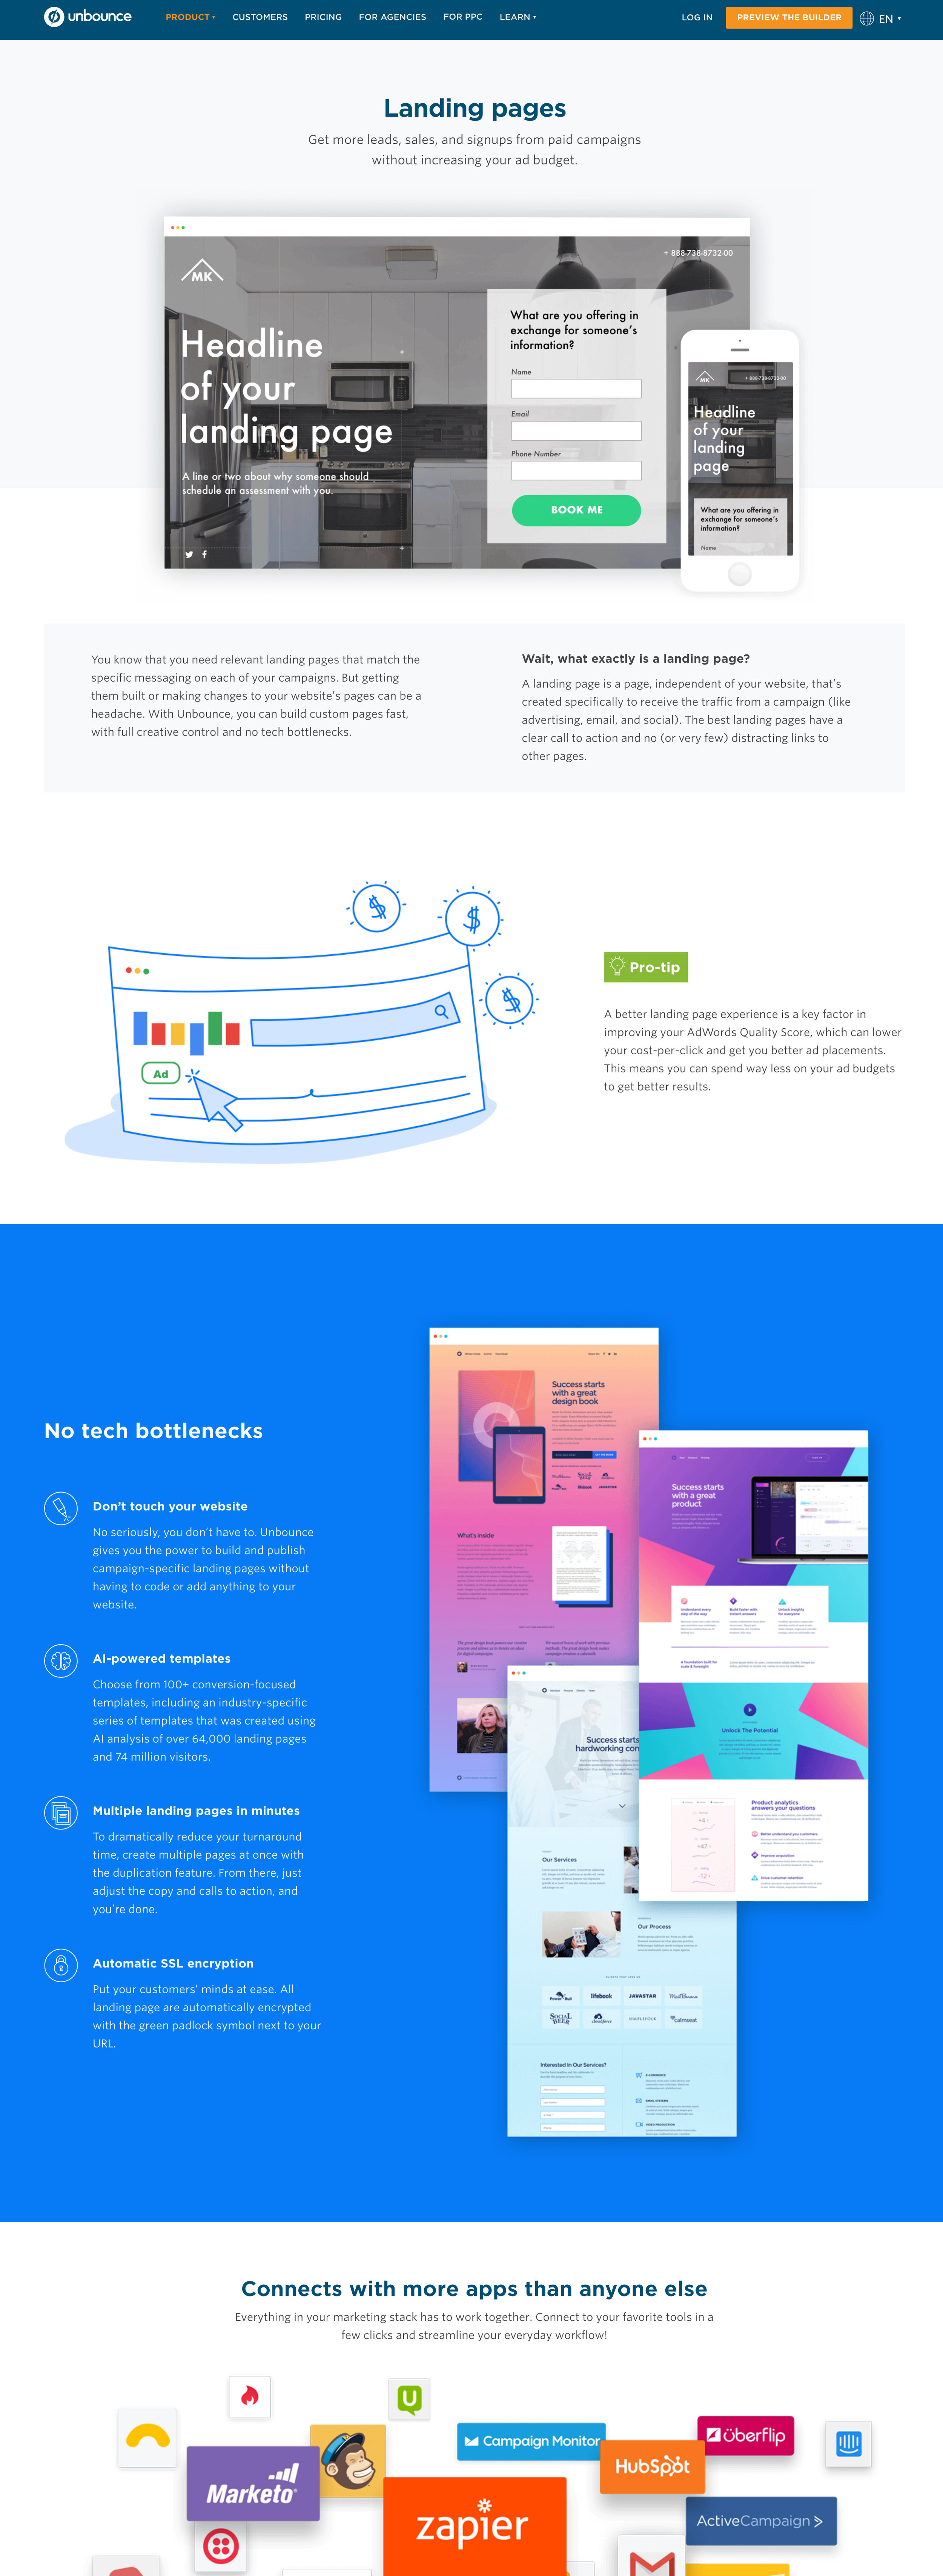 landing page overview old.jpg